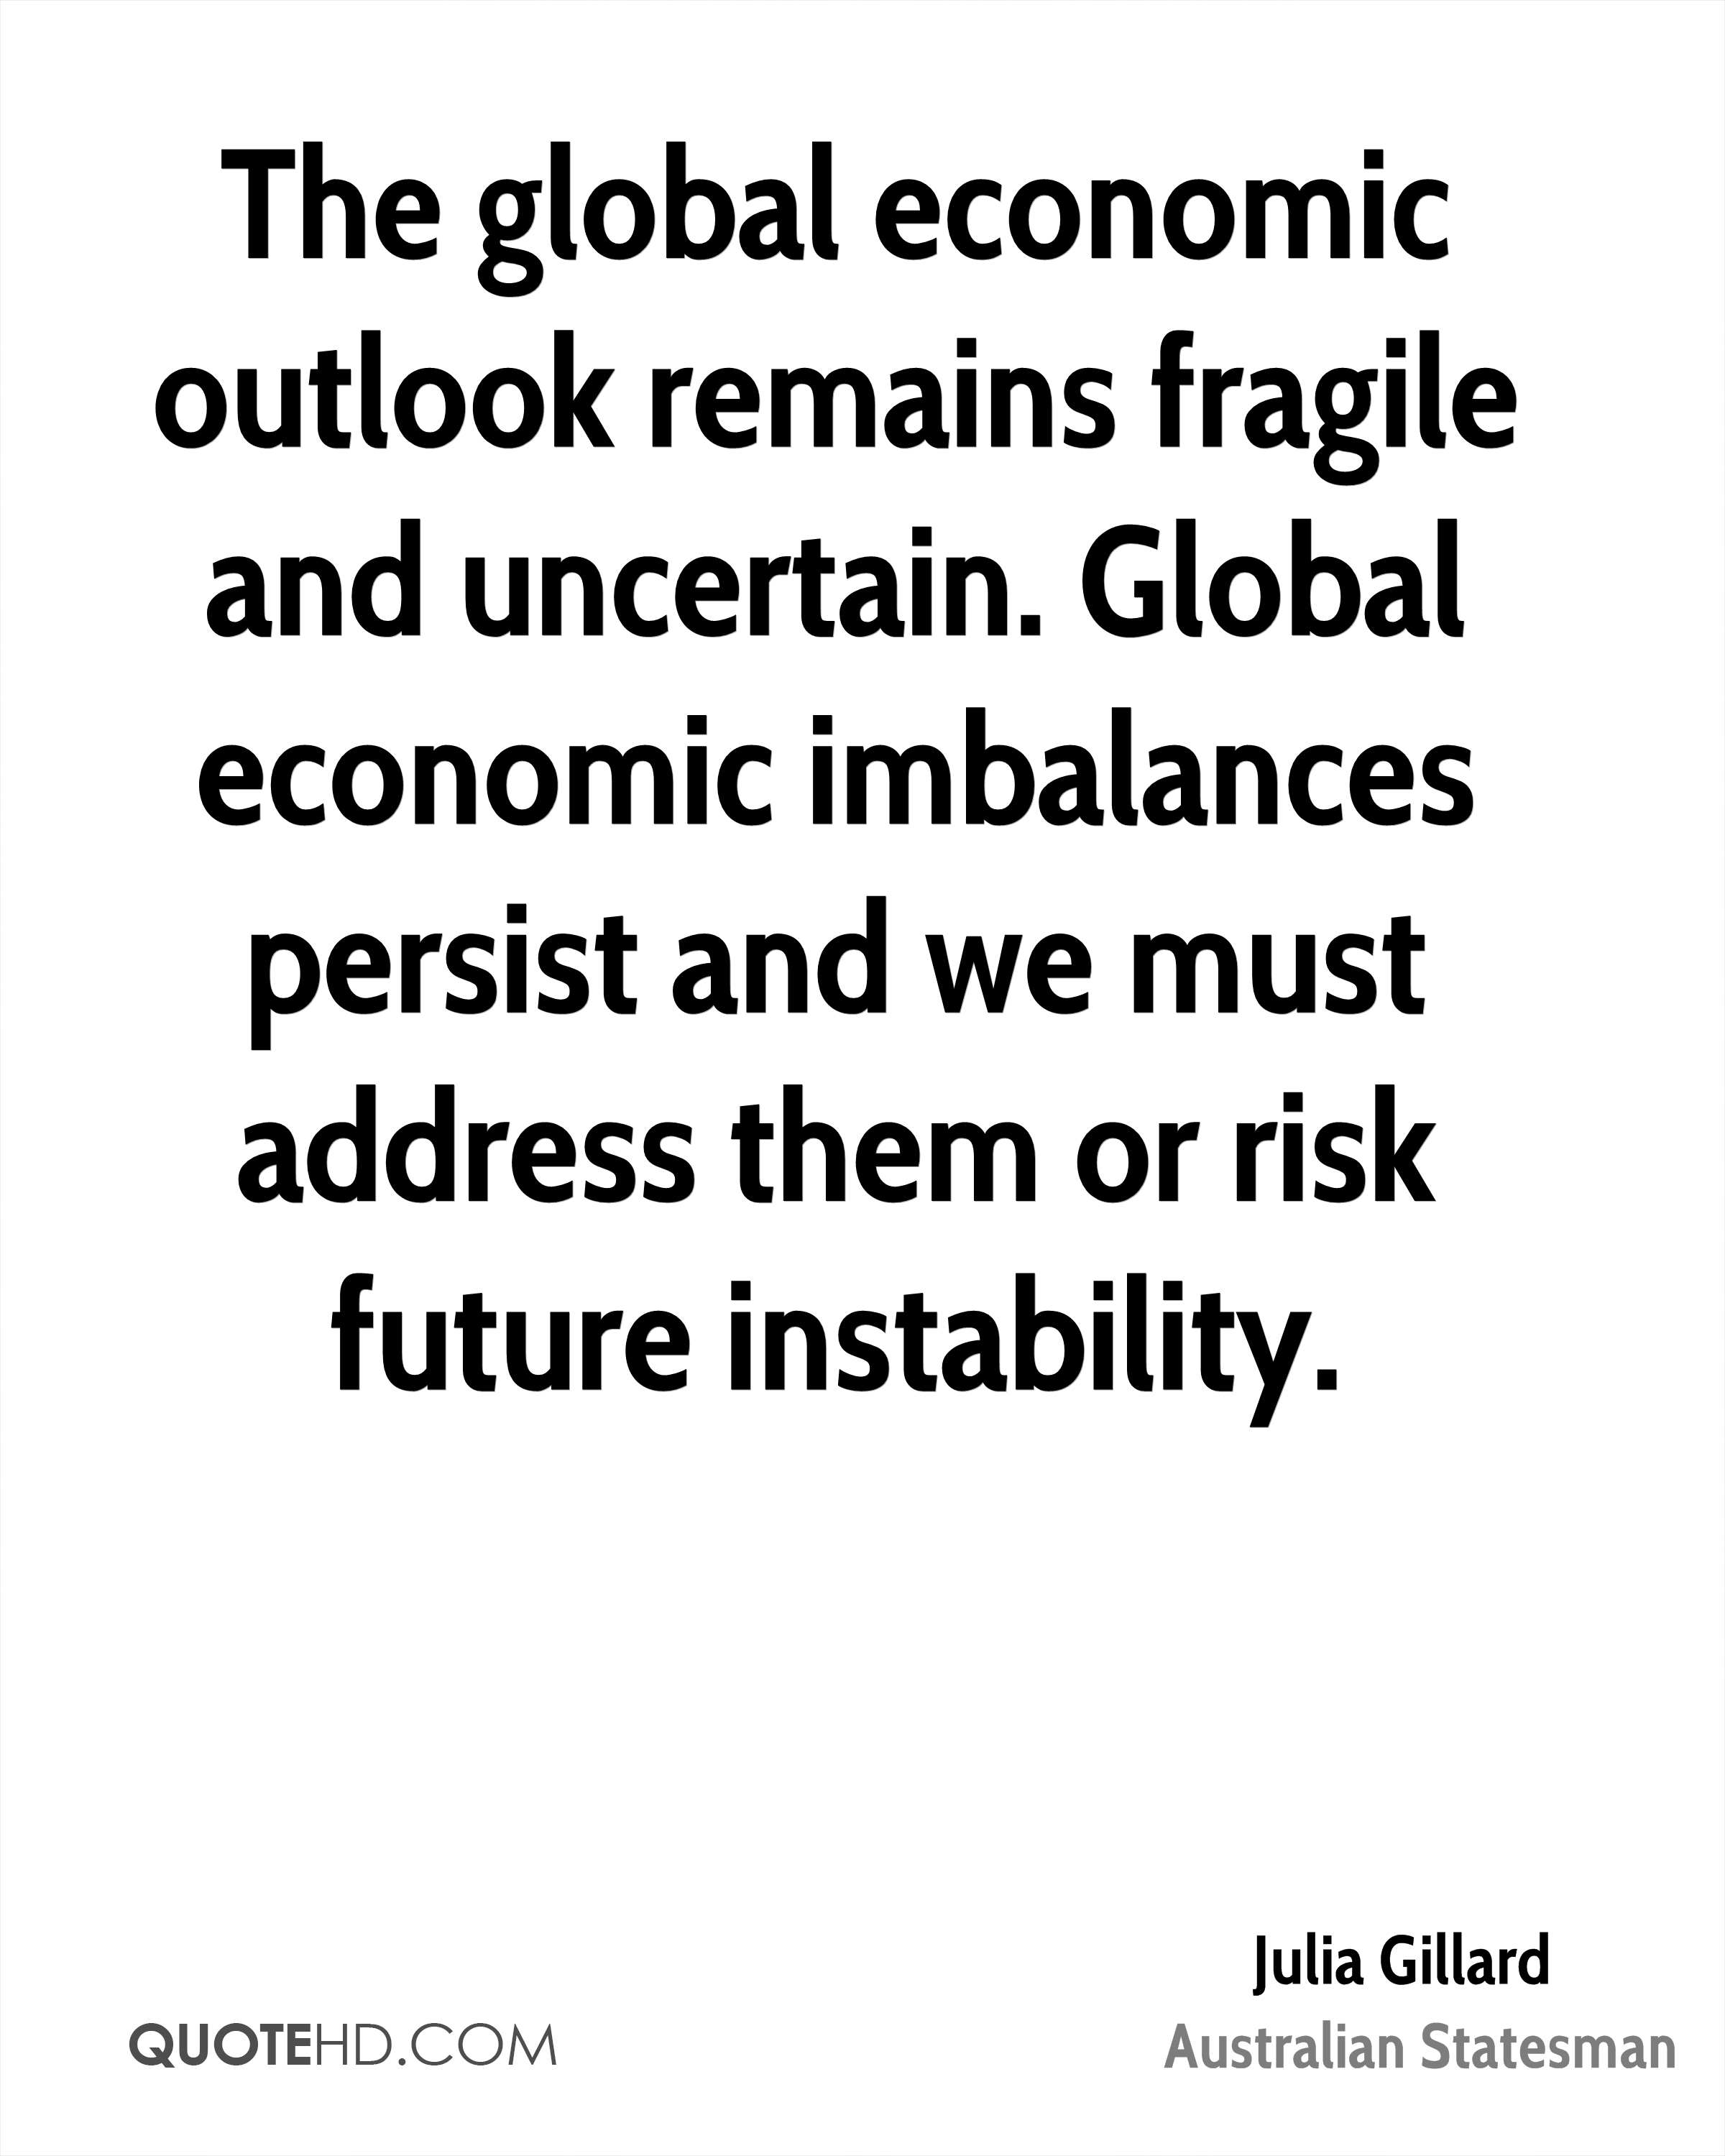 The global economic outlook remains fragile and uncertain. Global economic imbalances persist and we must address them or risk future instability.